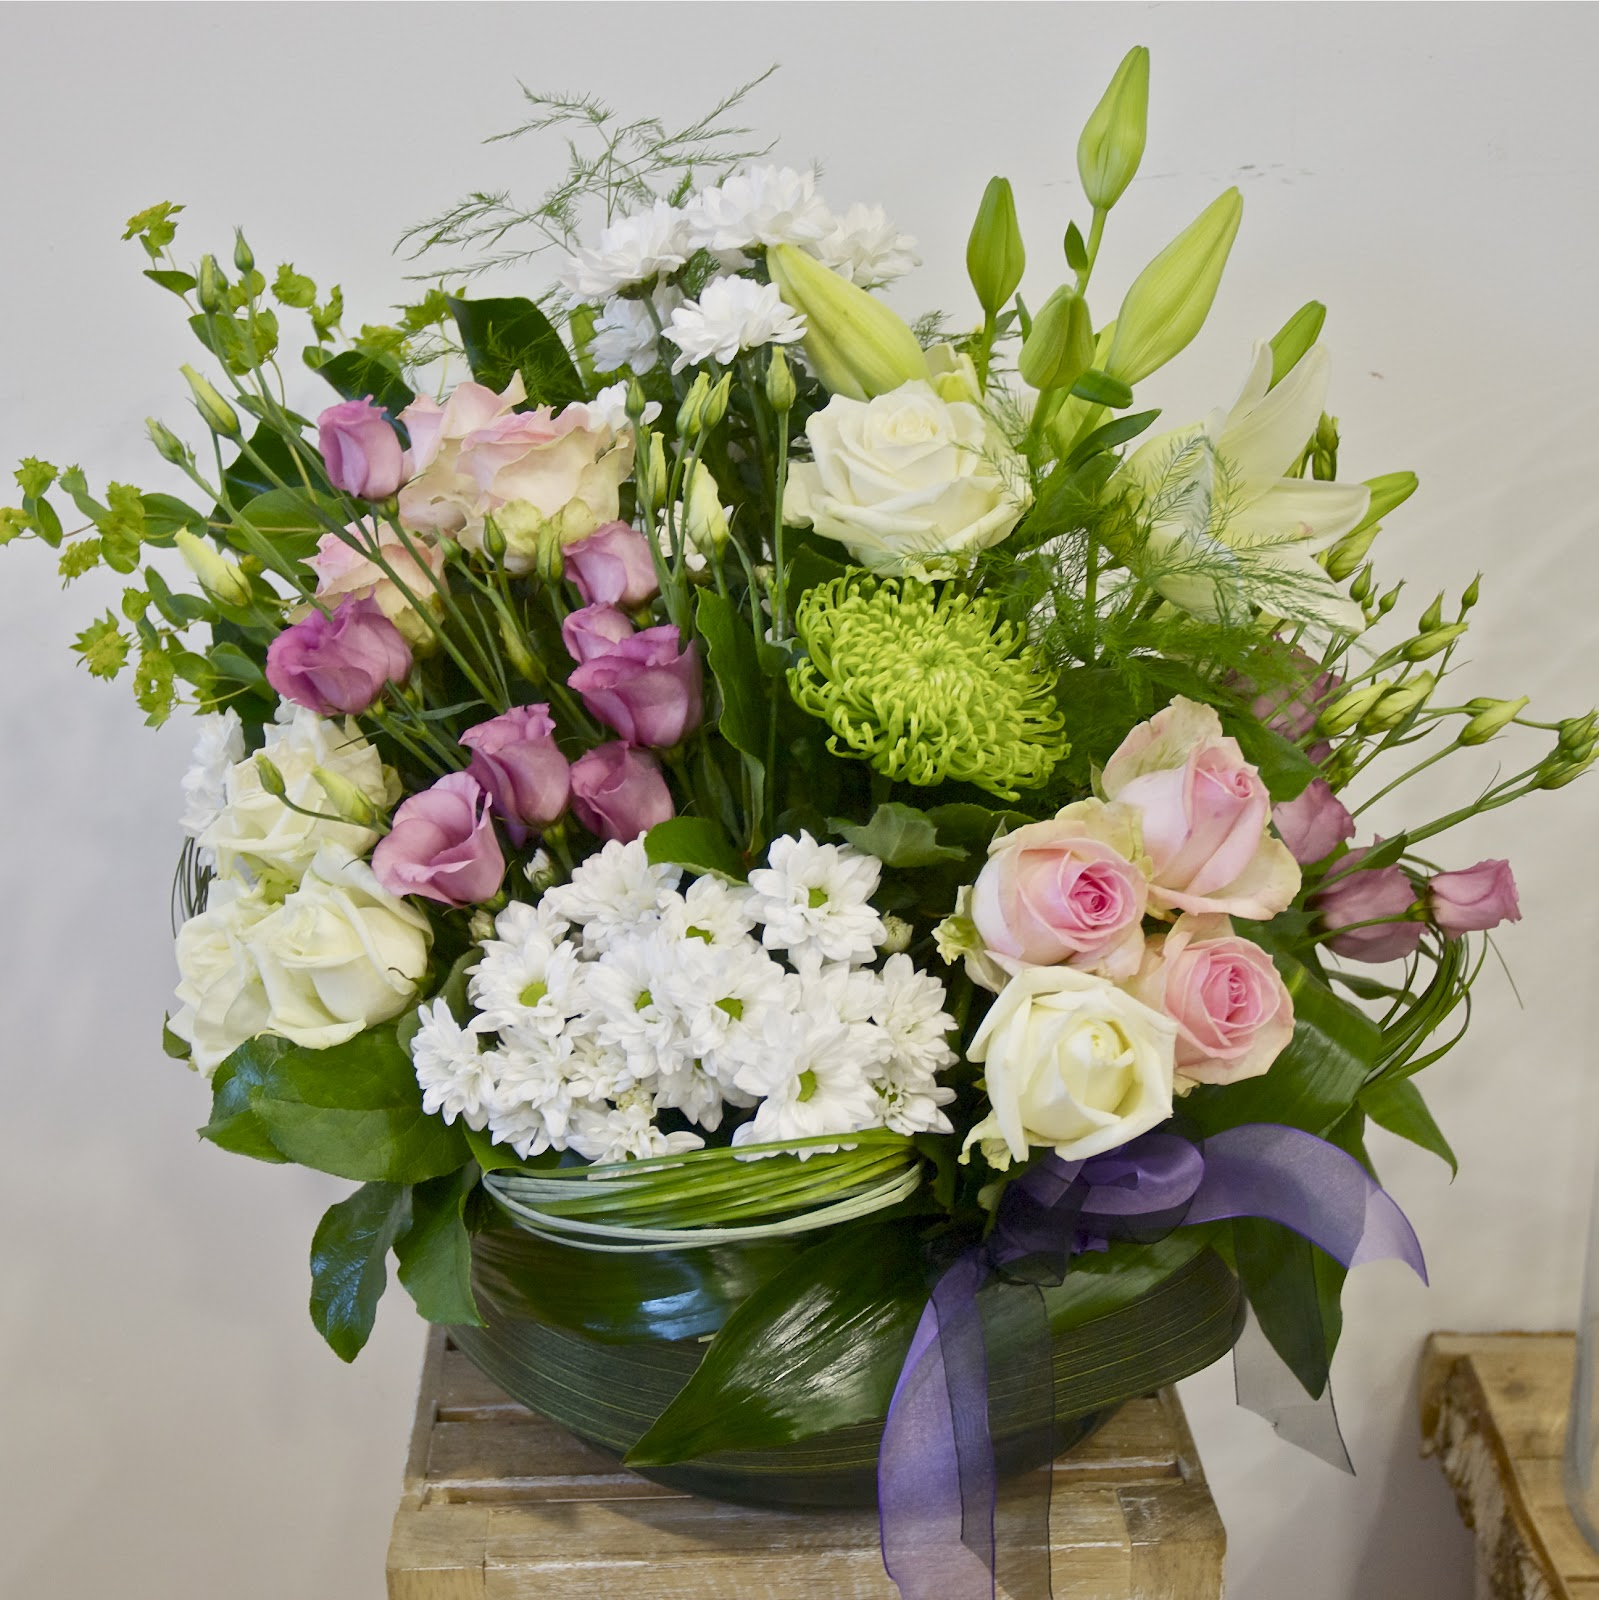 for a person who loved flowers - Rose Garden Funeral Home